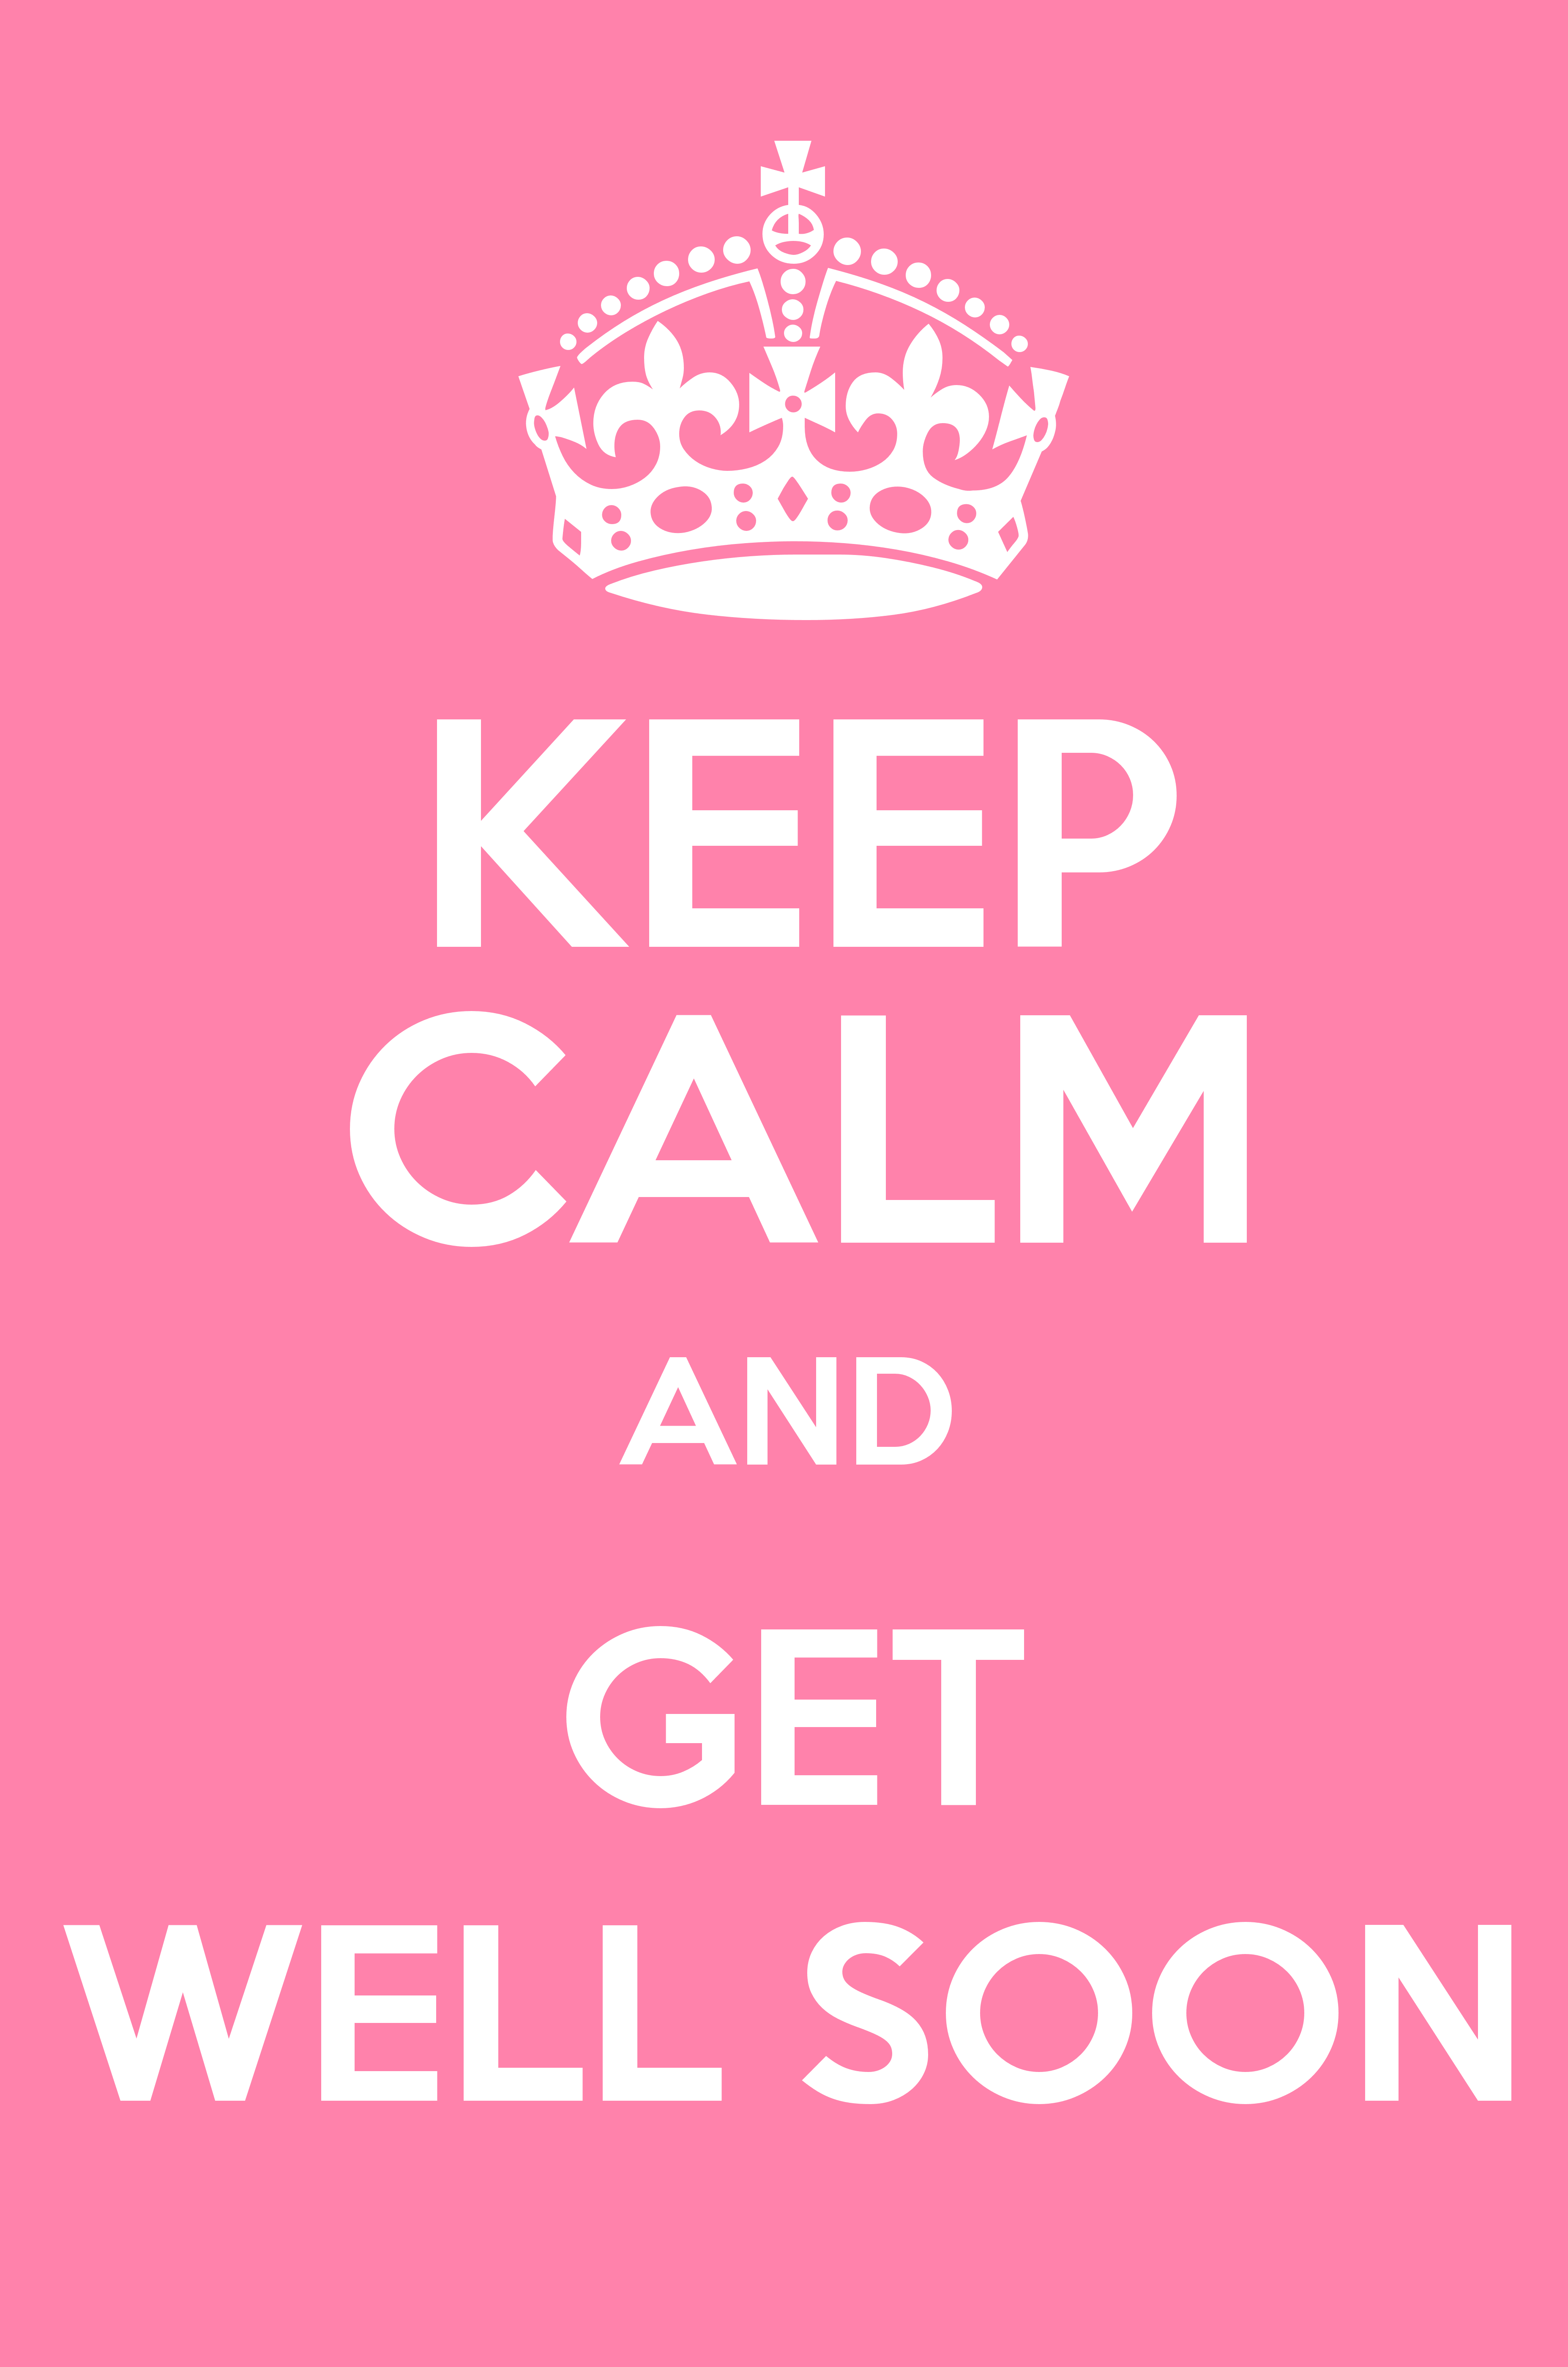 keep calm and get well soon poster